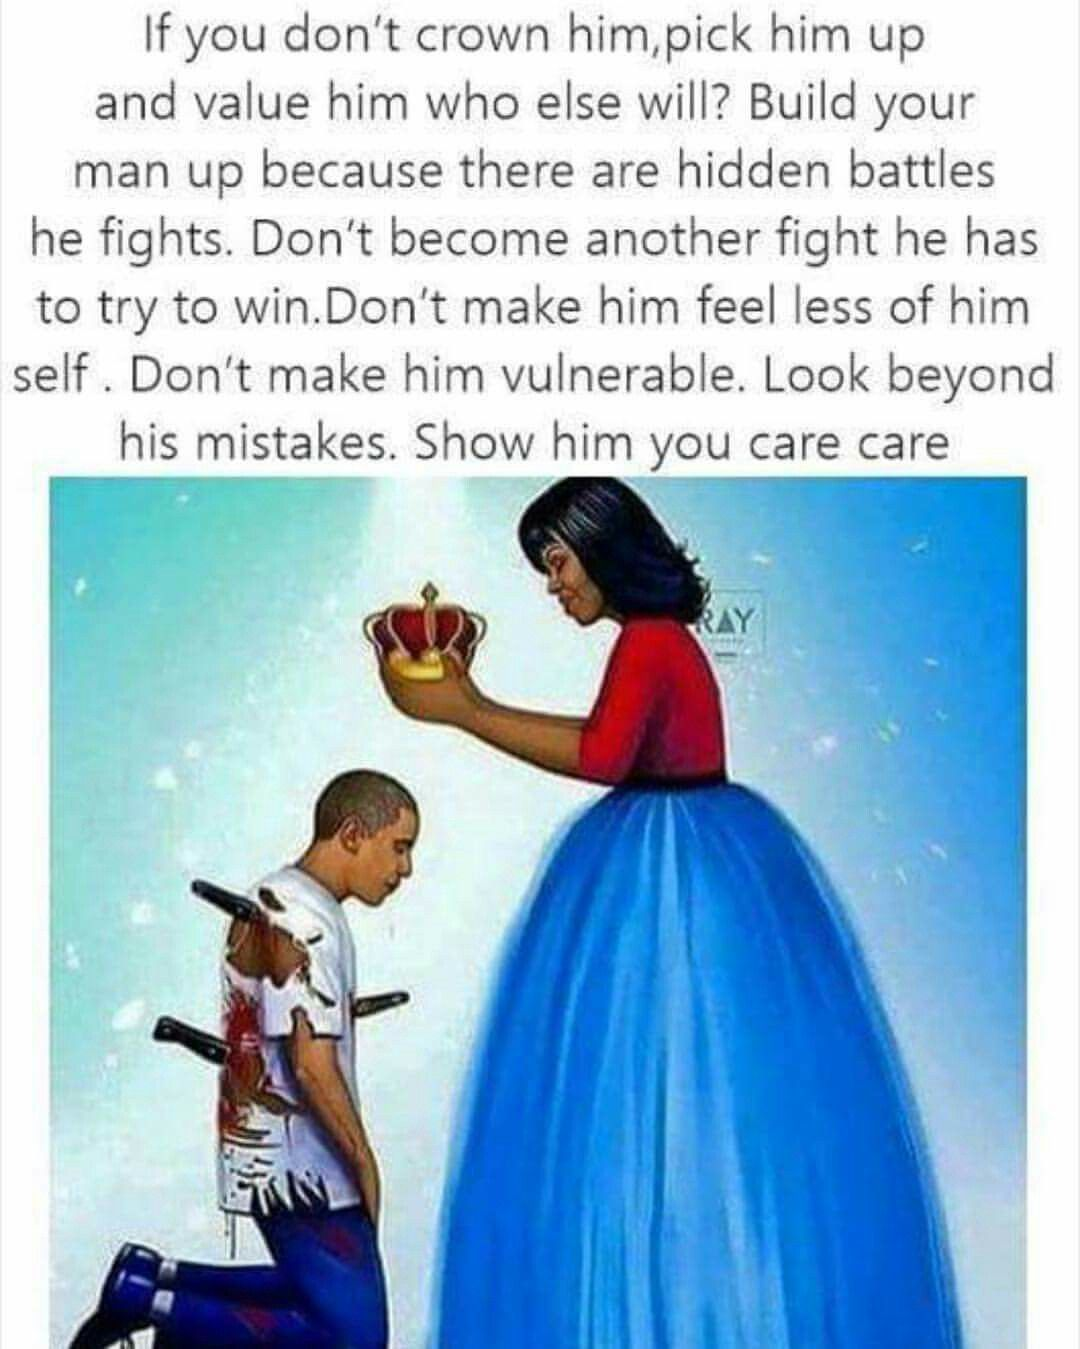 Always Bring Your Man Up Strong Couples Man Up Peace Quotes